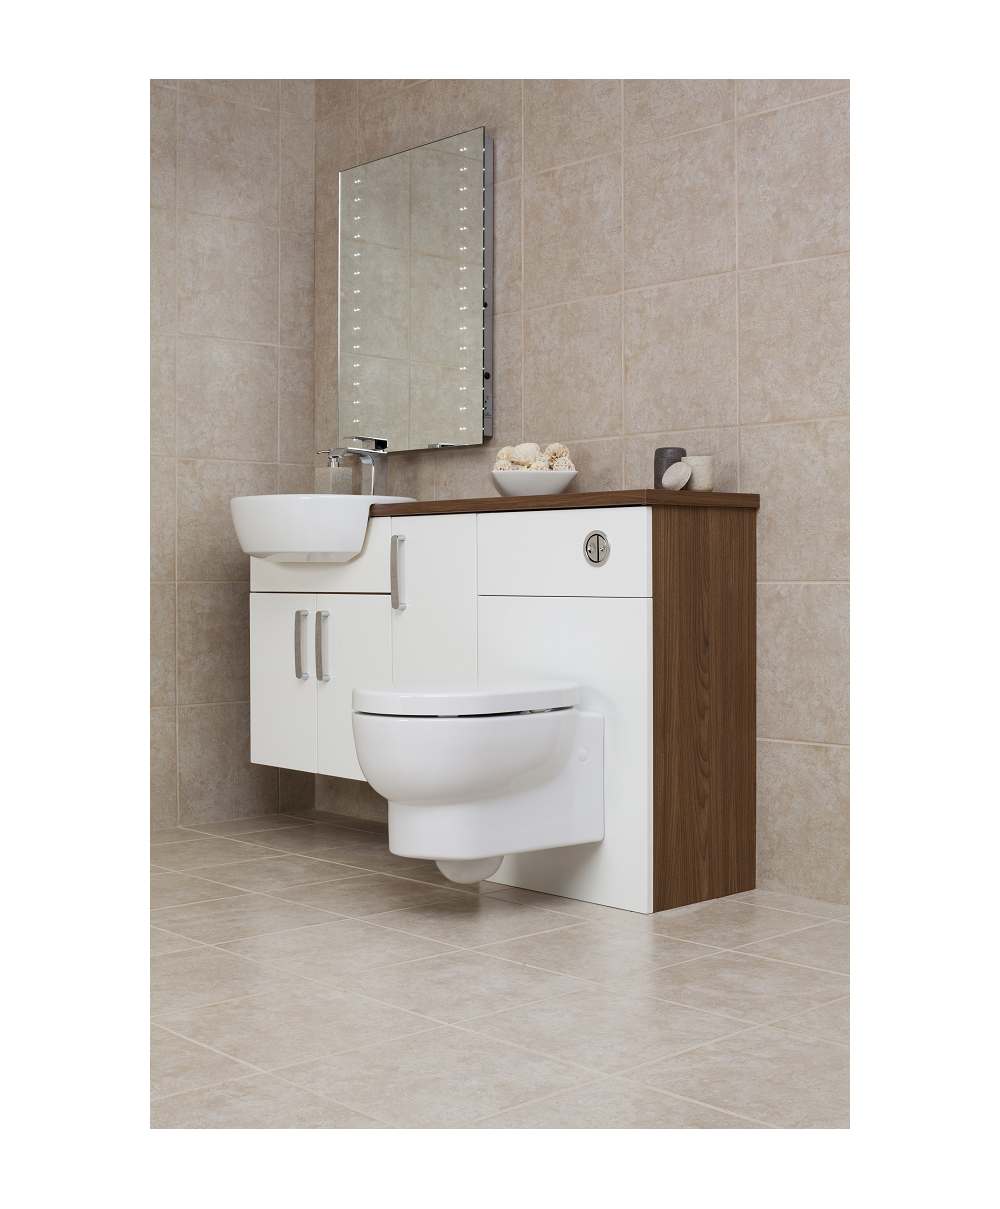 Bathroom furniture height with beautiful pictures for Bathroom furnishings